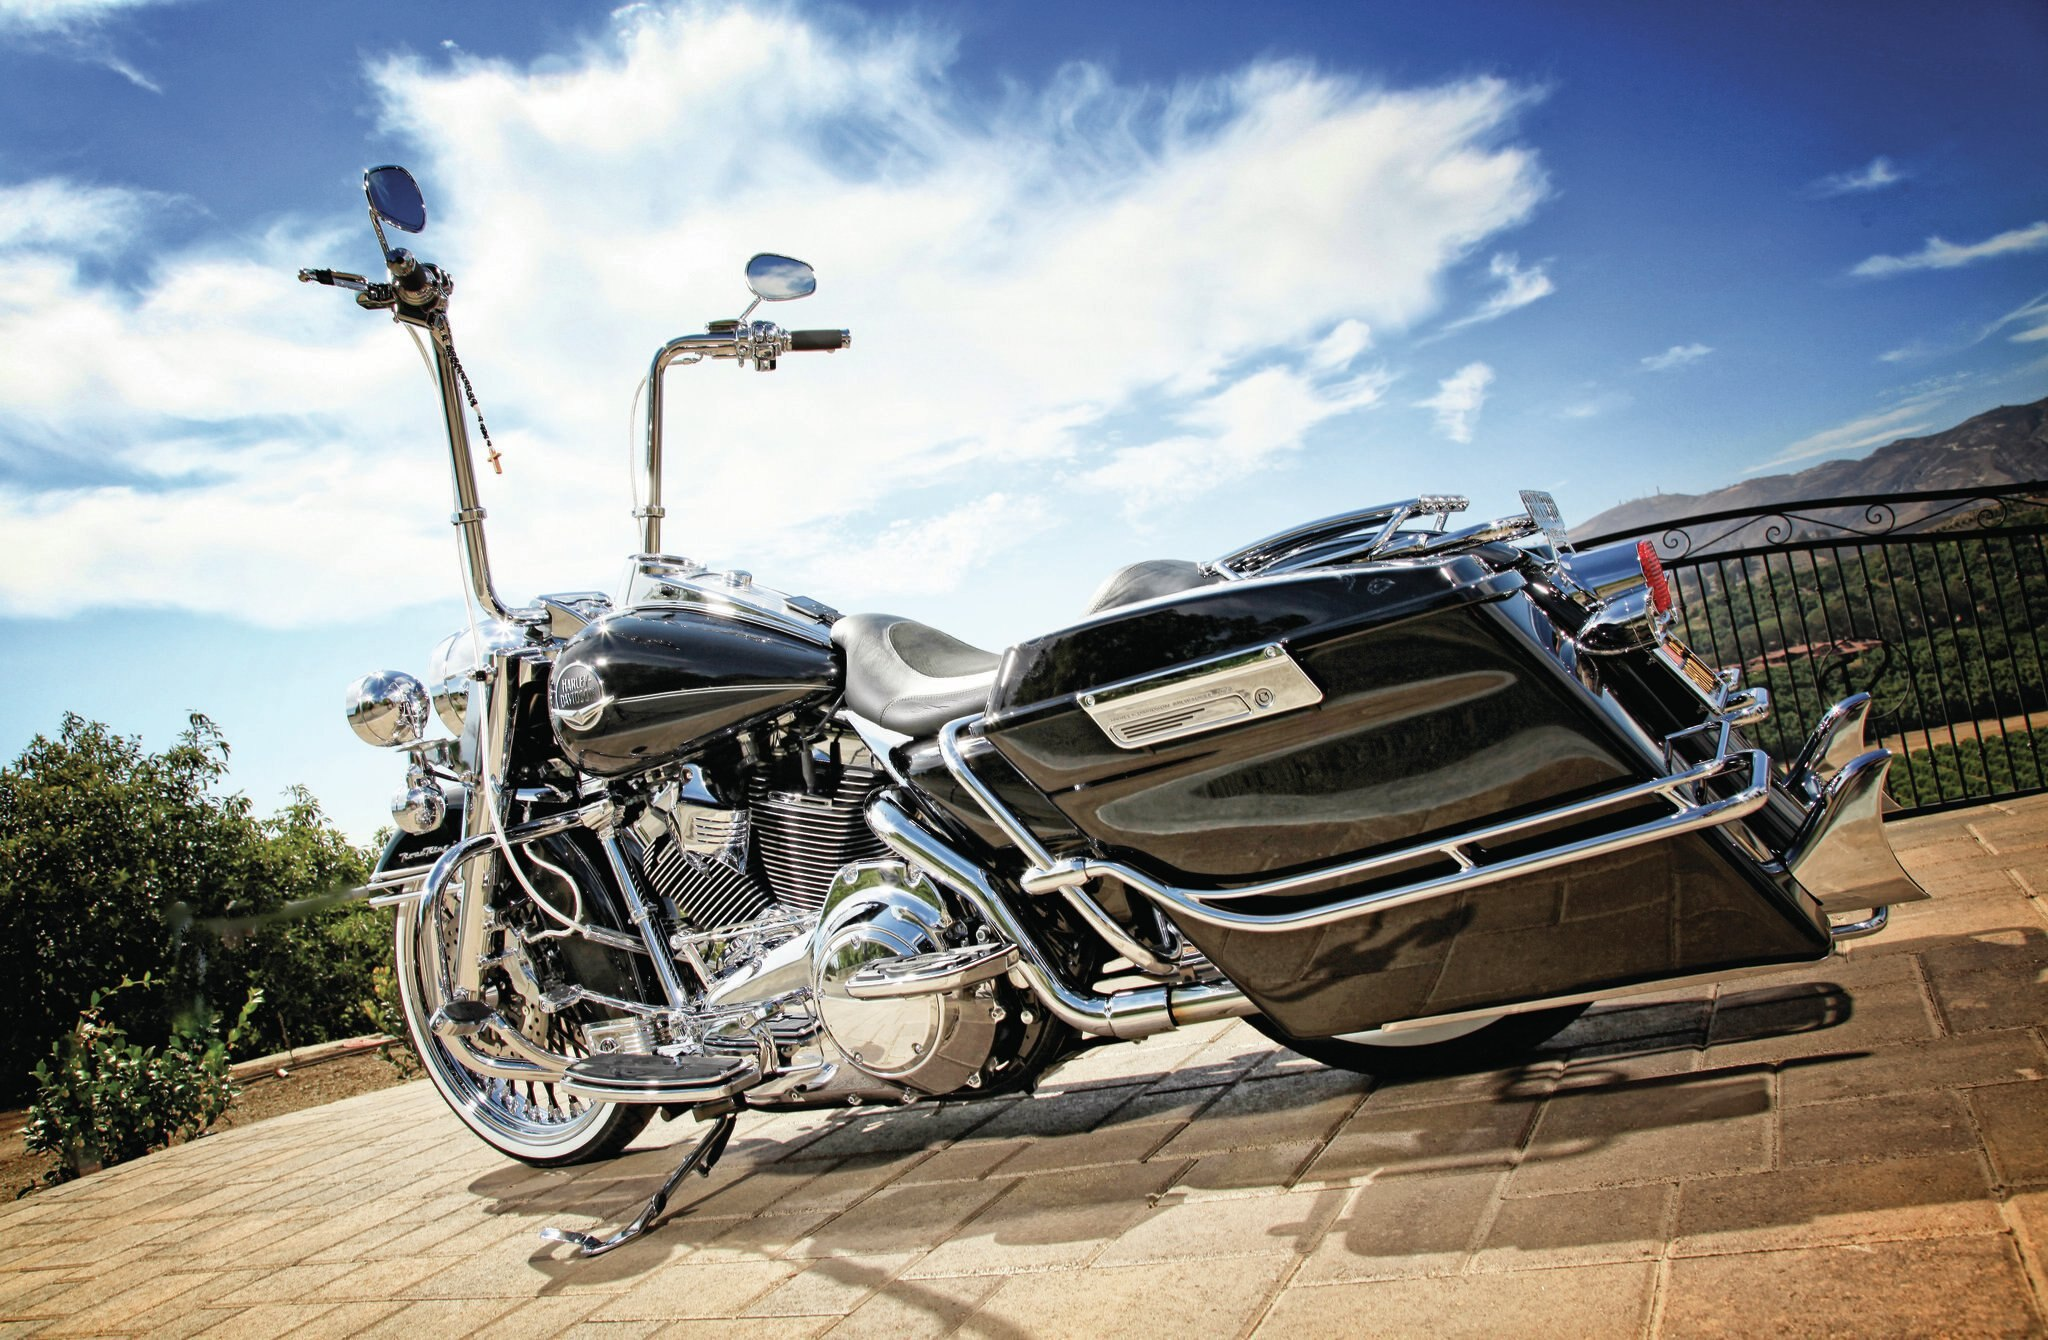 2008-harley-davidson-road-king-classic-bad-dads-extended-hard-bags-031